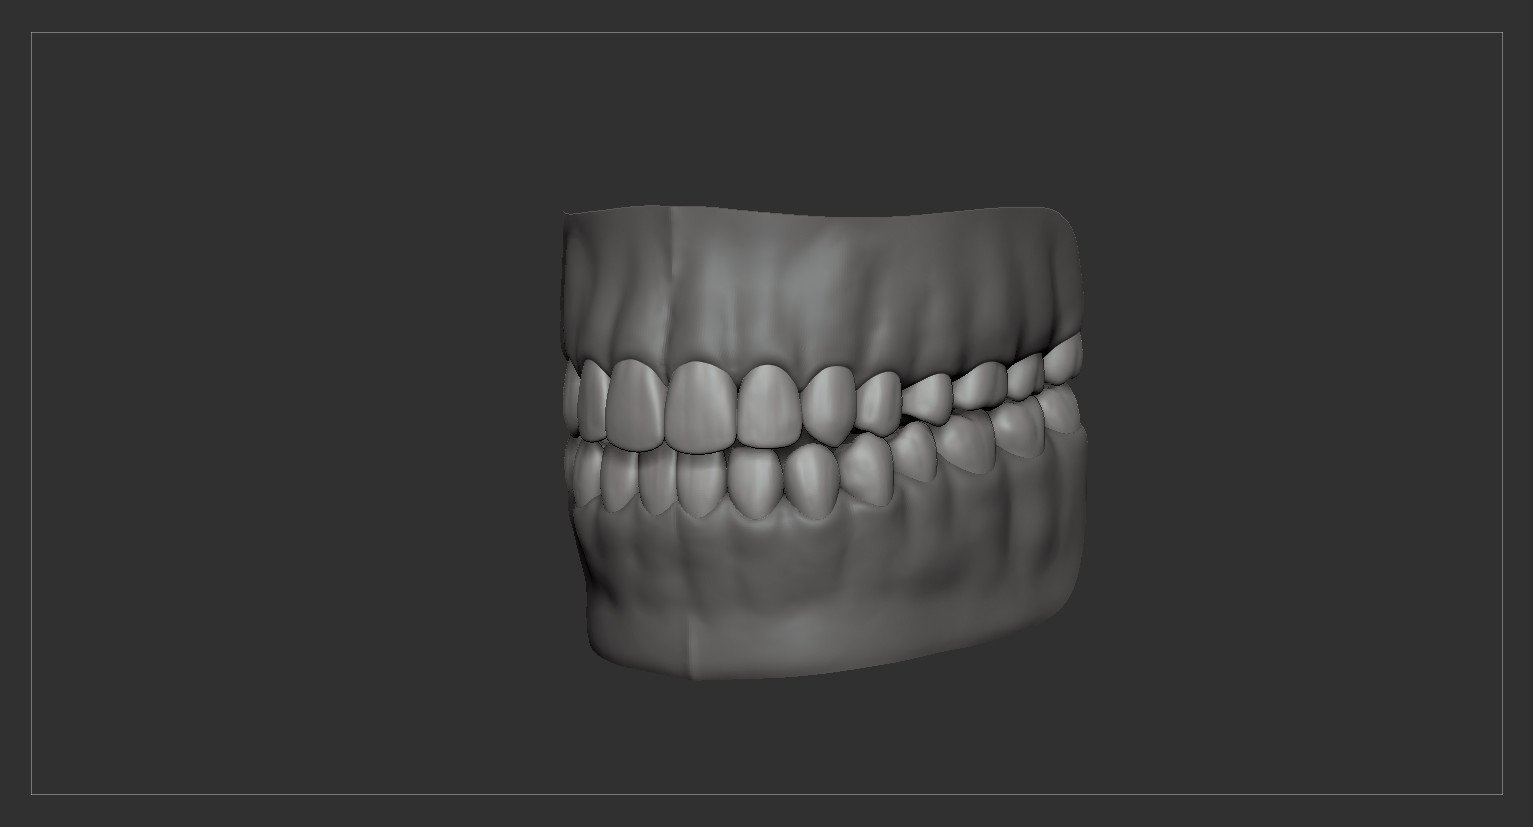 Teethtongue by alexlashko zbrush 11